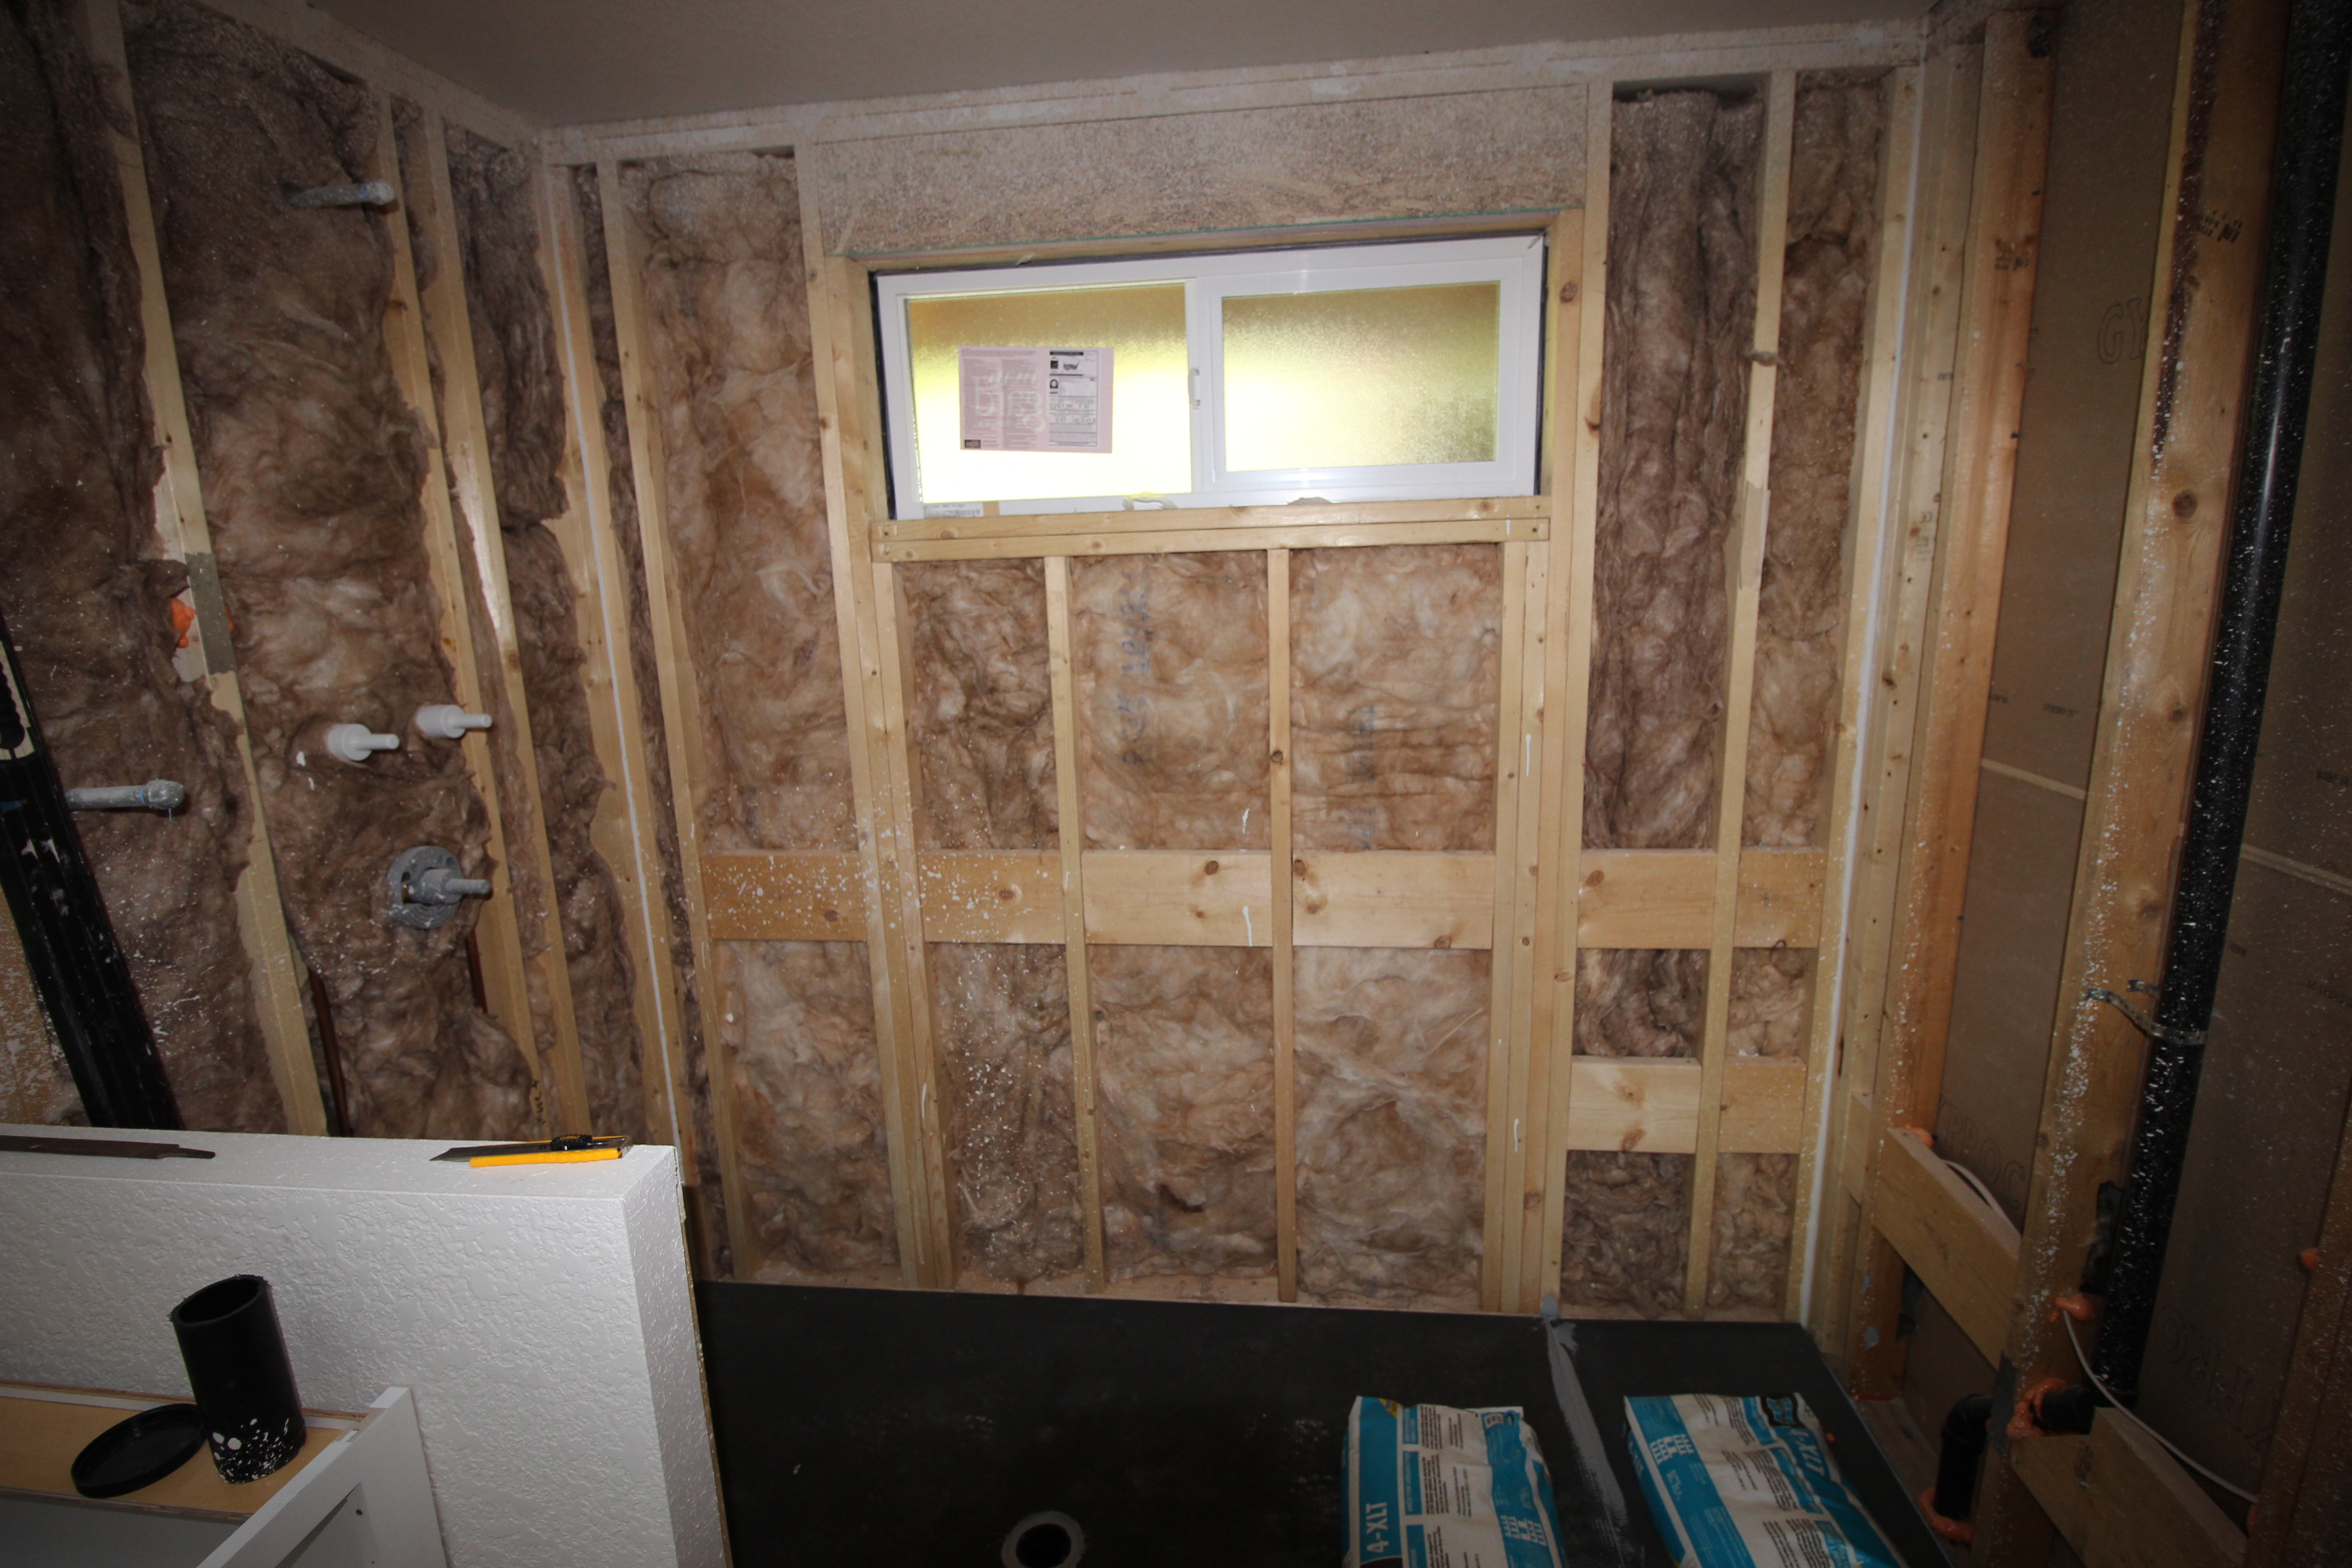 Bath Contractor Gallery Addition Backing Framing Insulation